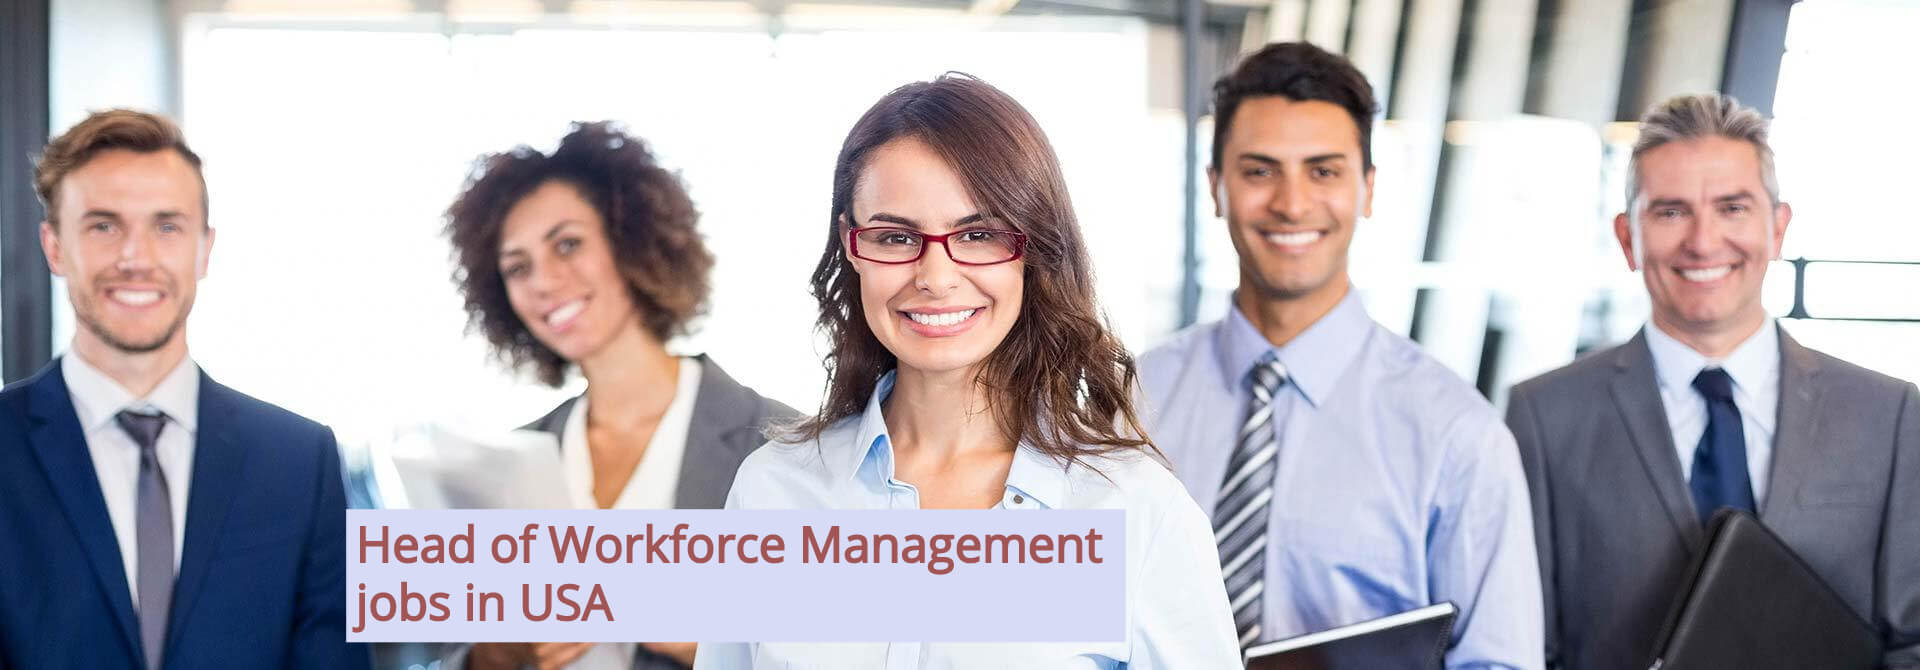 Head of Workforce Management jobs in USA-thumbnail